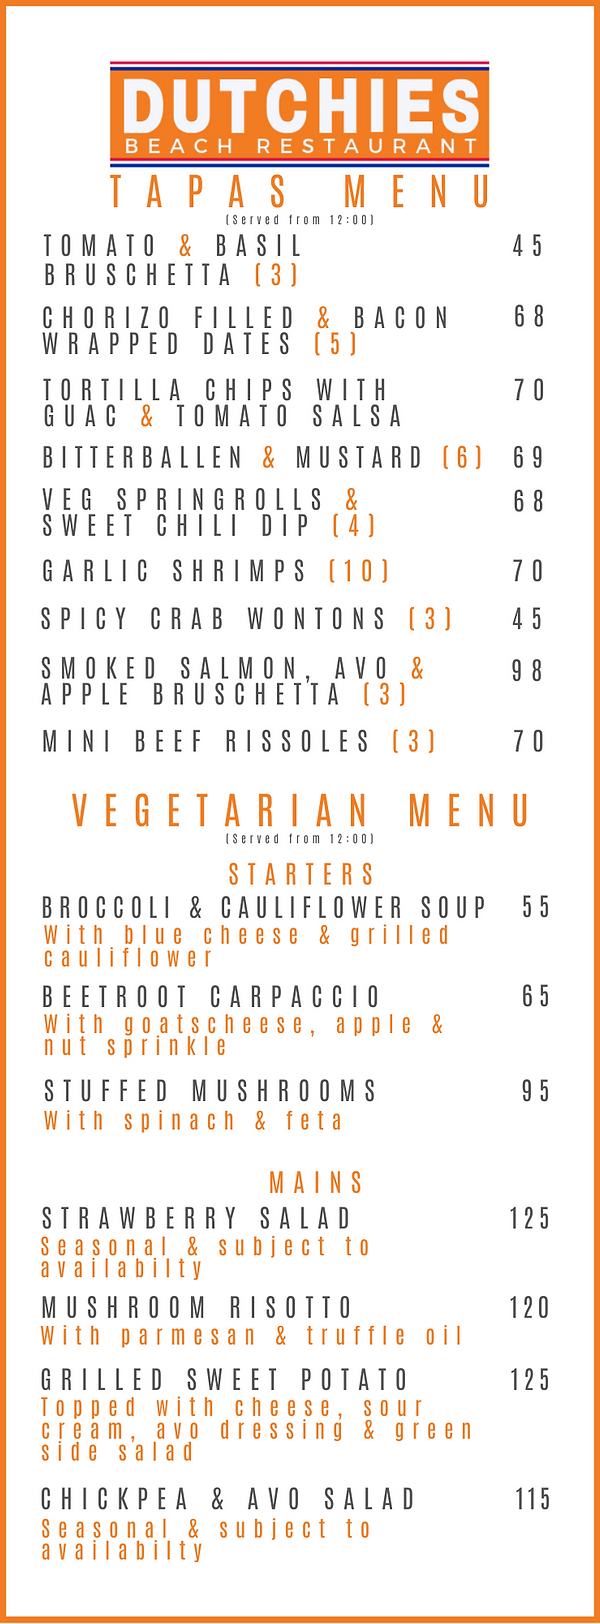 DUTCHIES TAPAS & VEG MENU.png